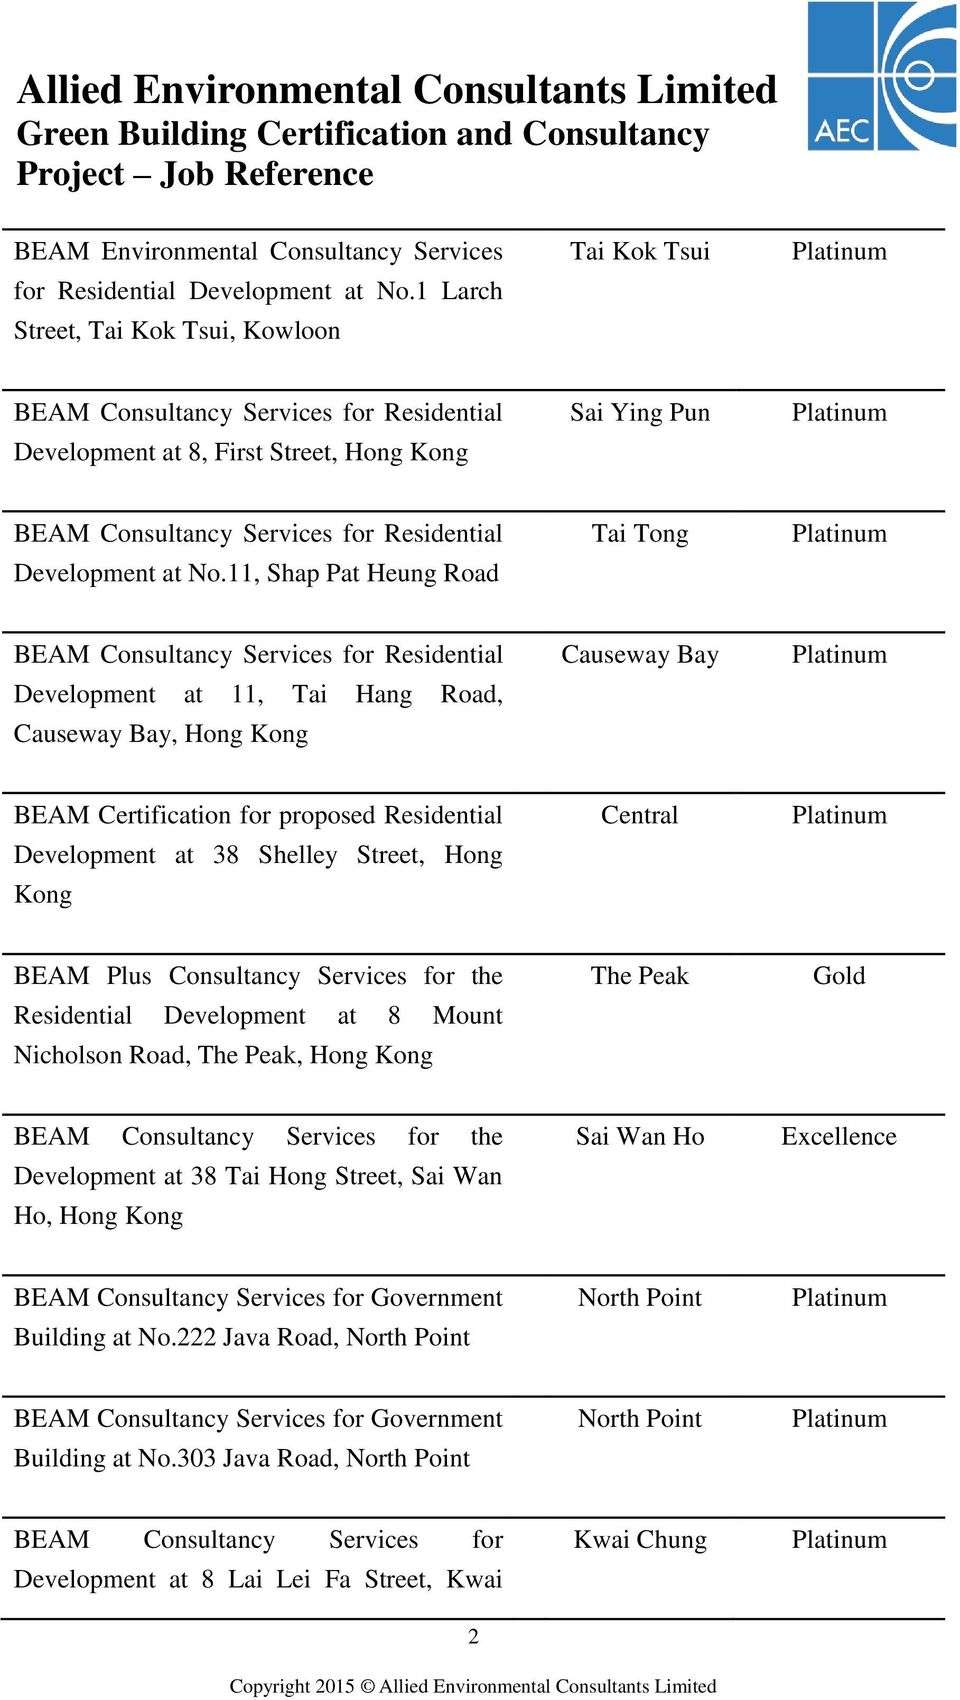 Residential Development at 8 Mount Nicholson Road, The Peak, Hong Kong The Peak Development at 38 Tai Hong Street, Sai Wan Ho, Hong Kong Sai Wan Ho Excellence BEAM Consultancy Services for Government